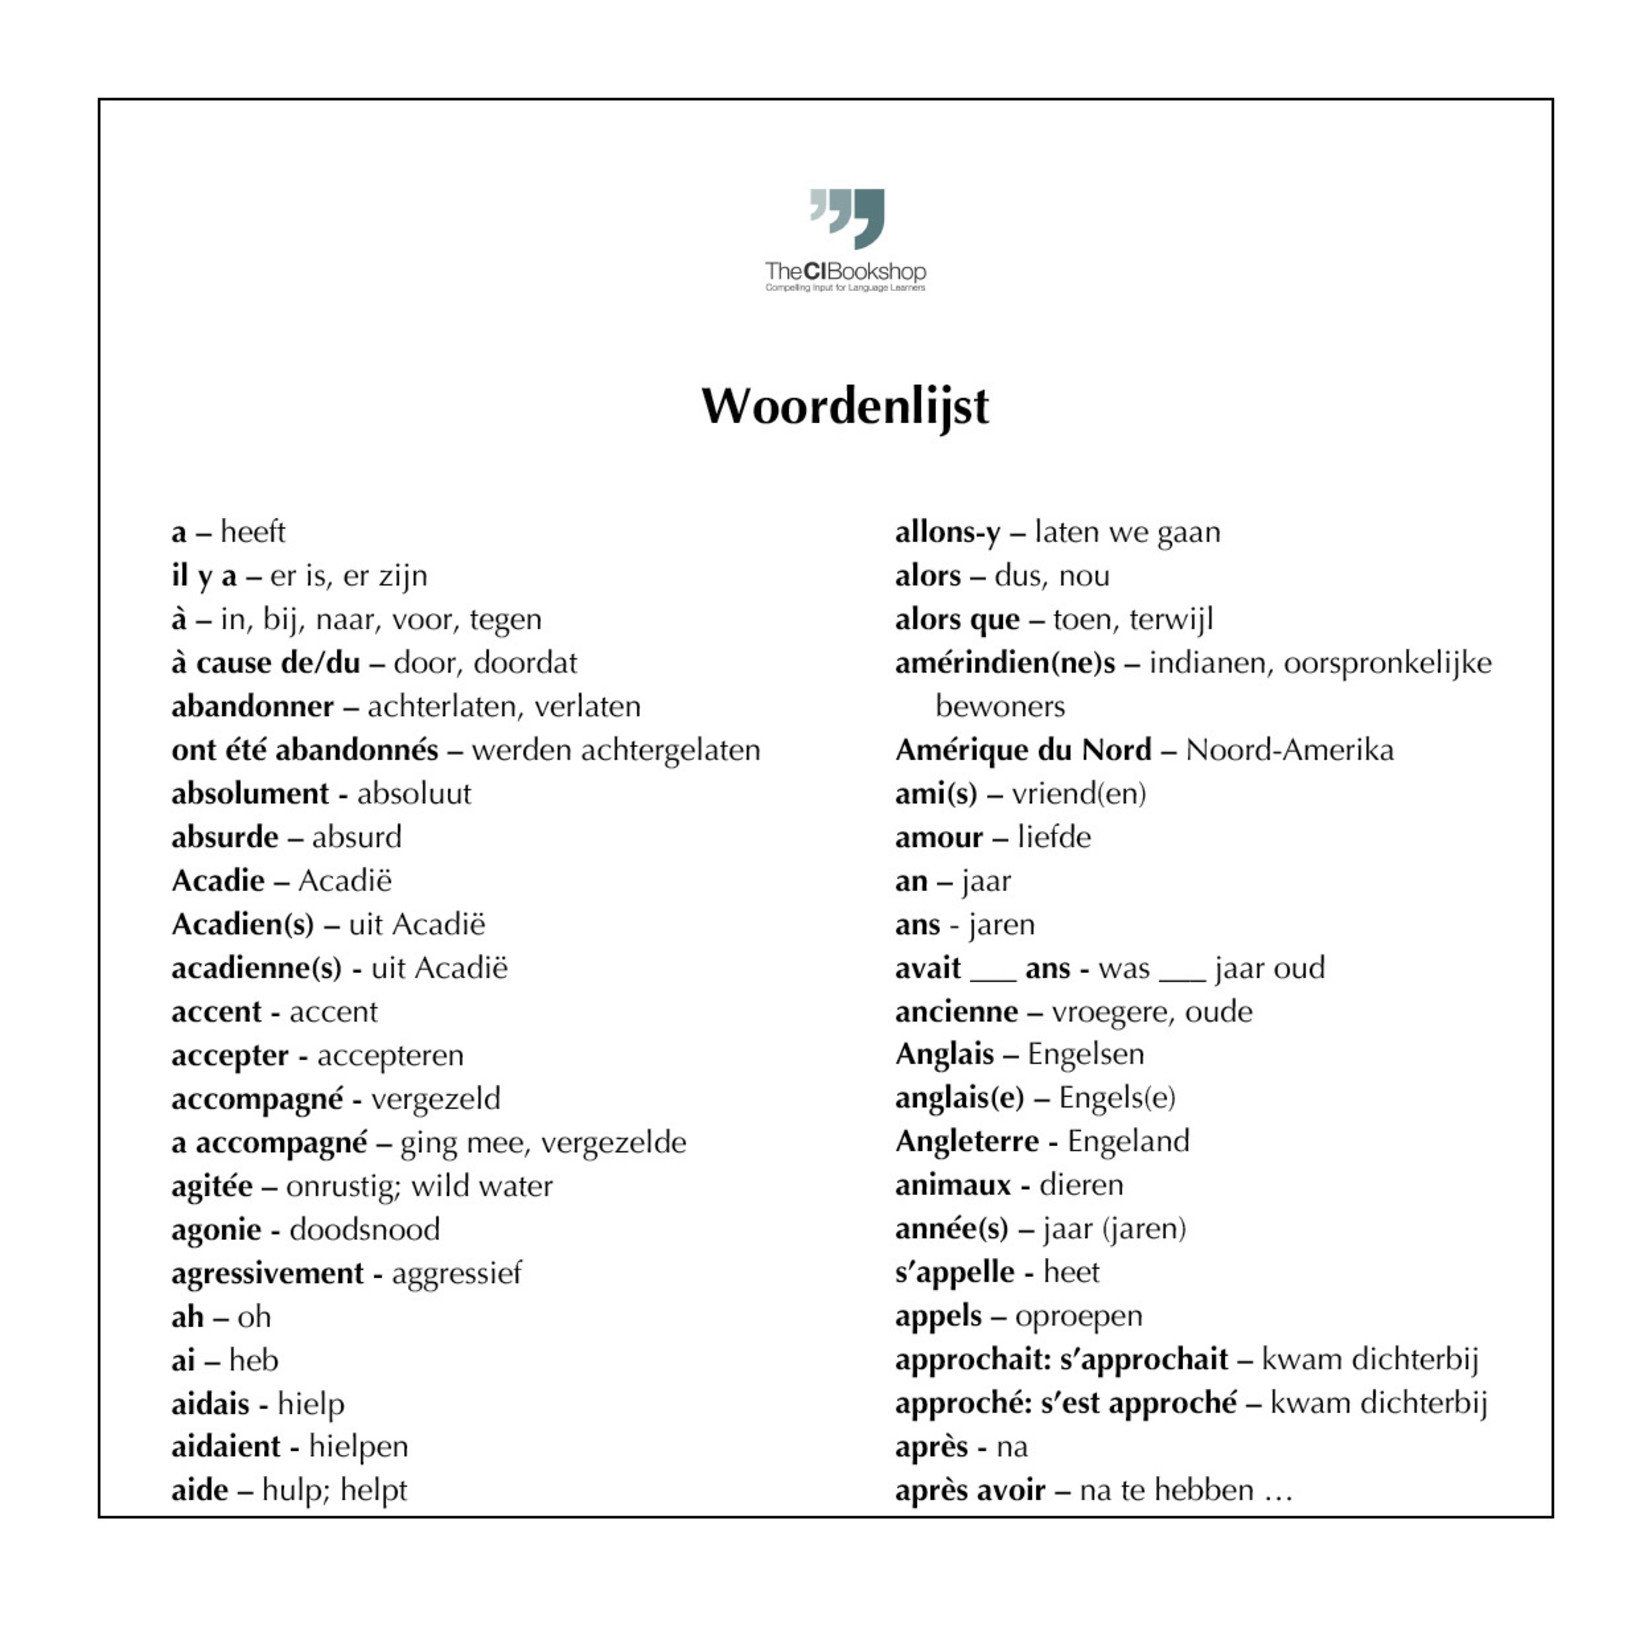 Dutch glossary for Les aventures d'Isabelle